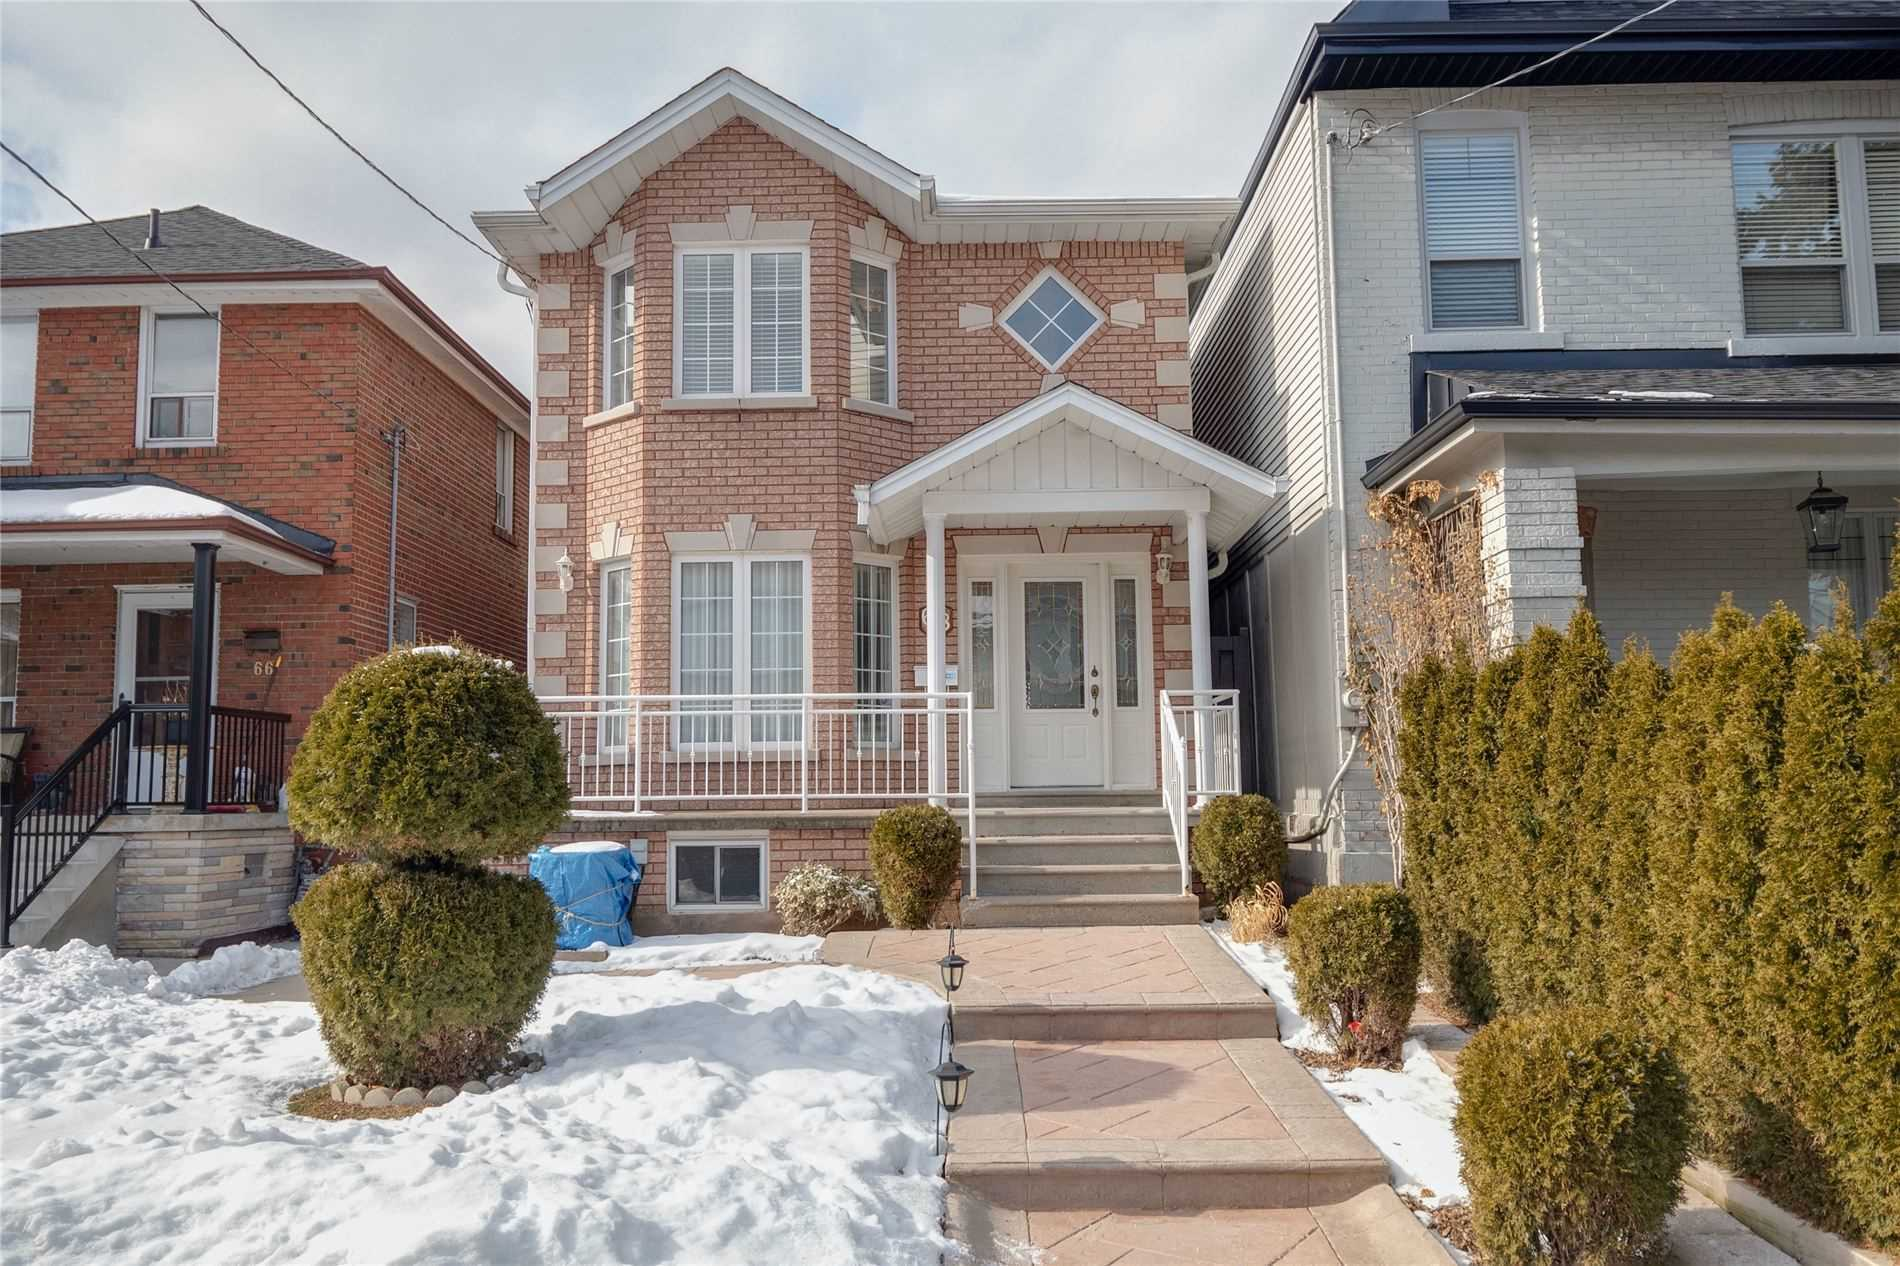 68 Sellers Ave (0)